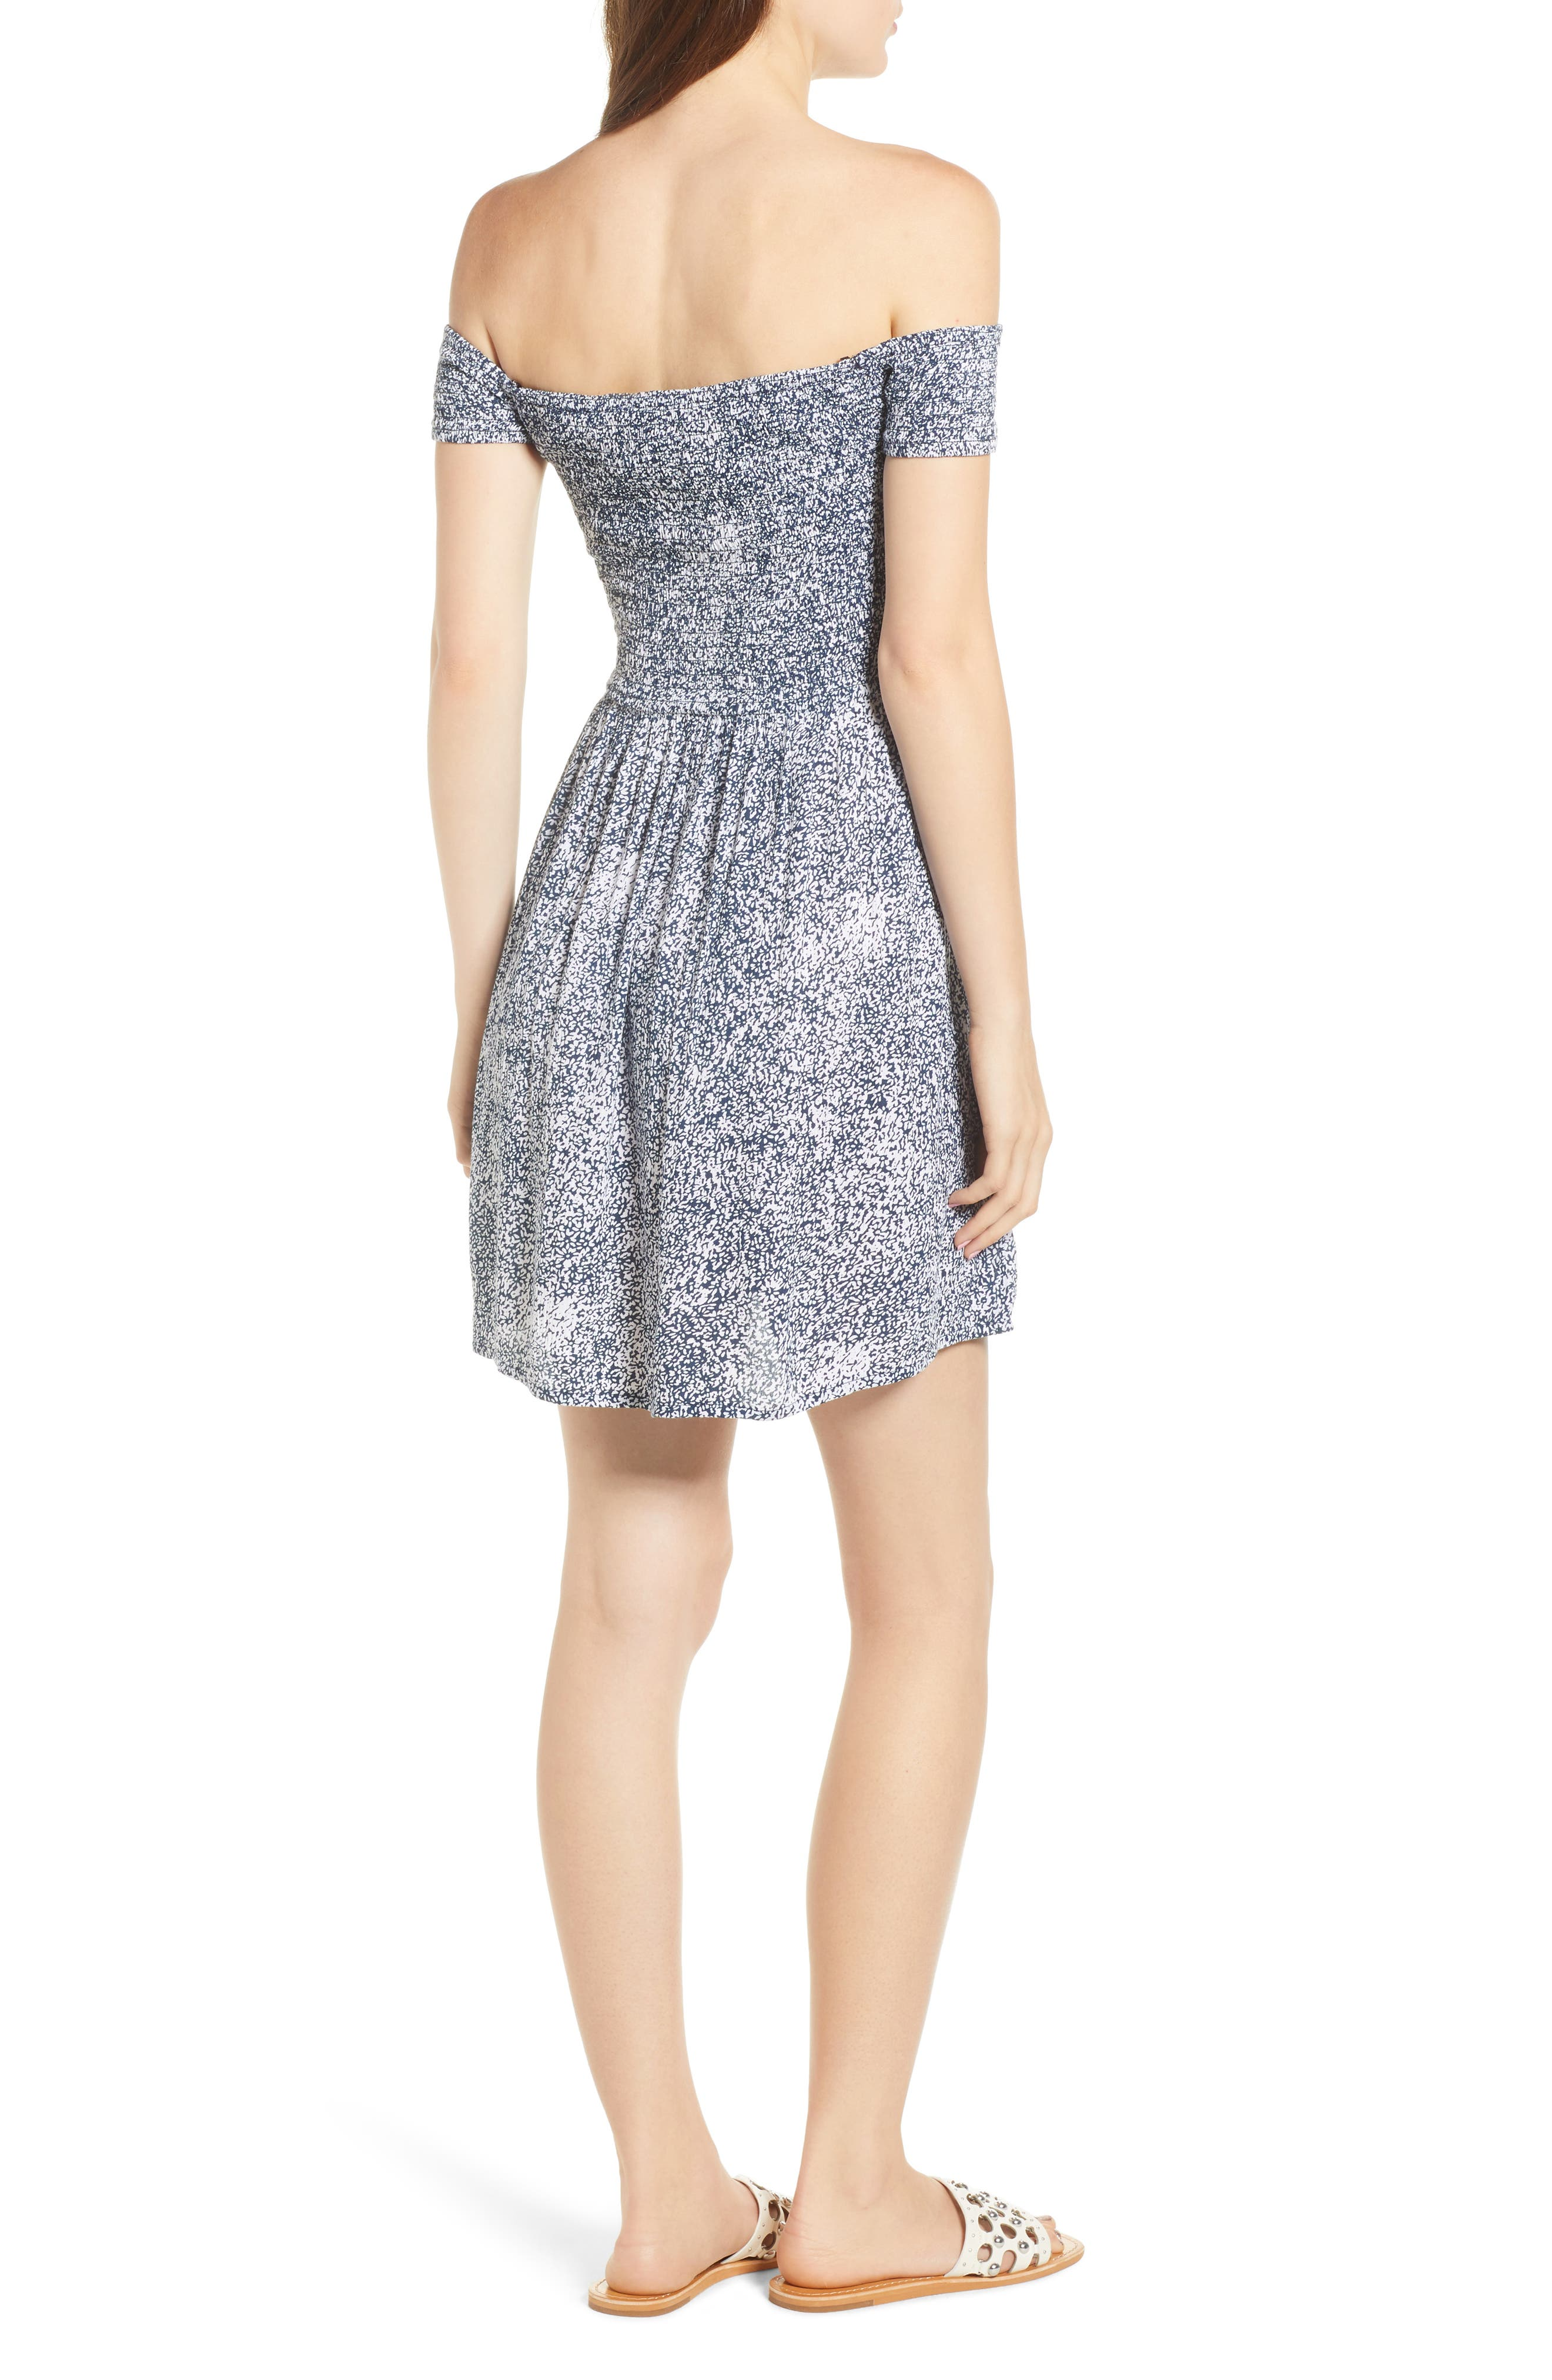 She's So Daisy Off the Shoulder Dress,                             Alternate thumbnail 2, color,                             415